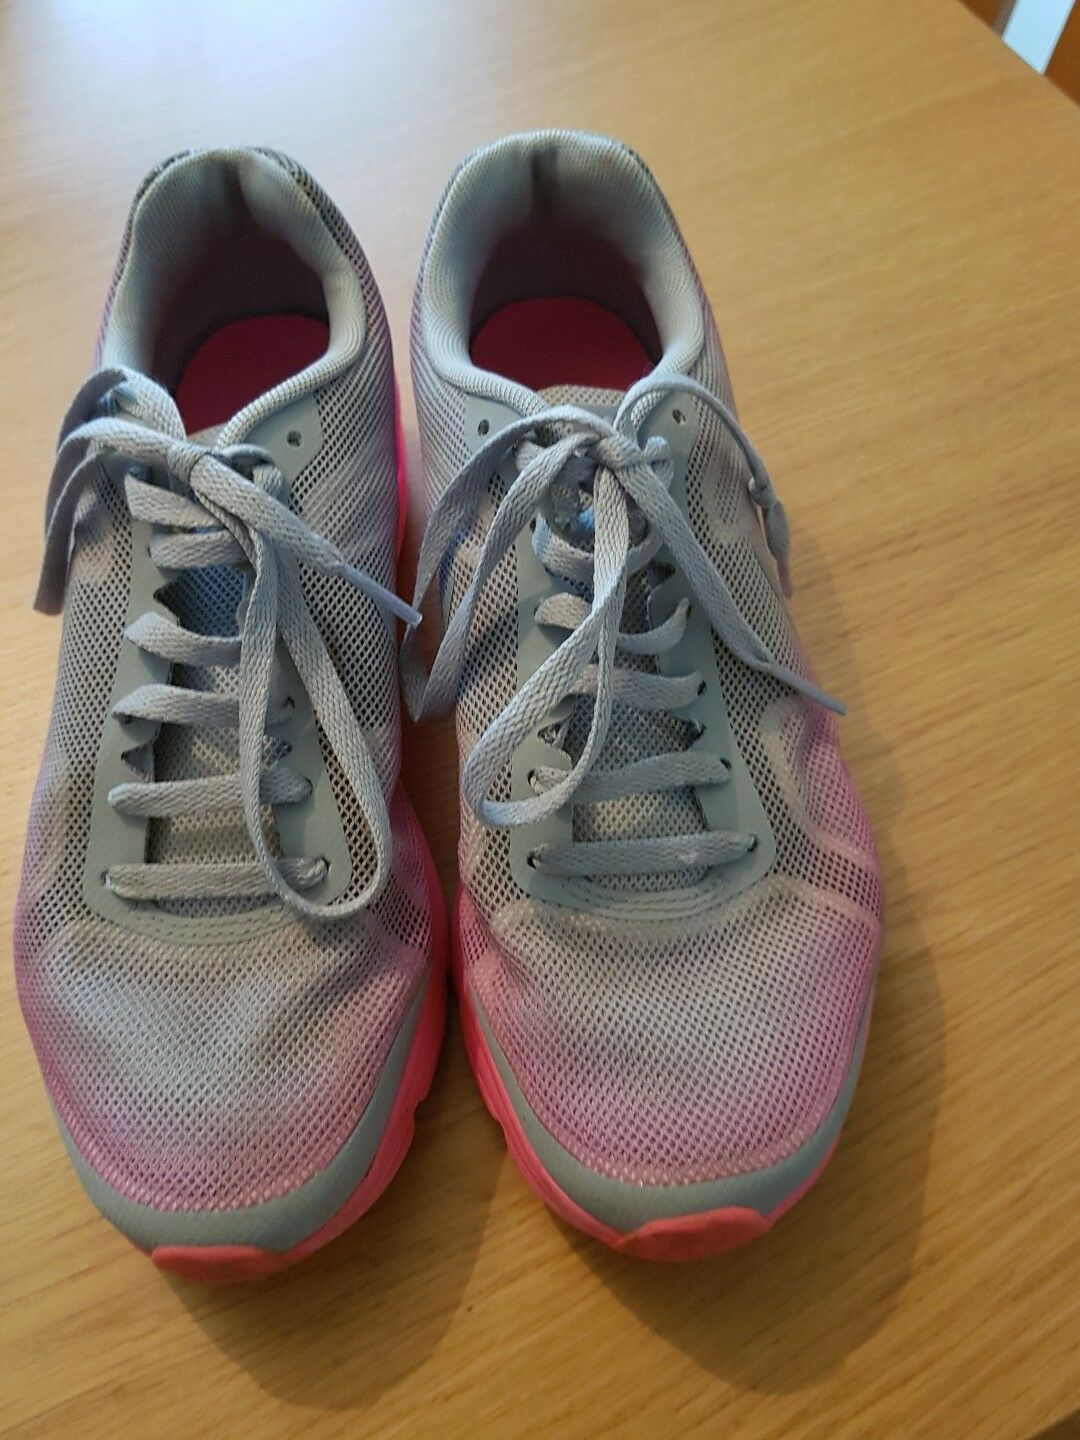 Ladies nike air max trainers size 4 The most popular shoes for men and women